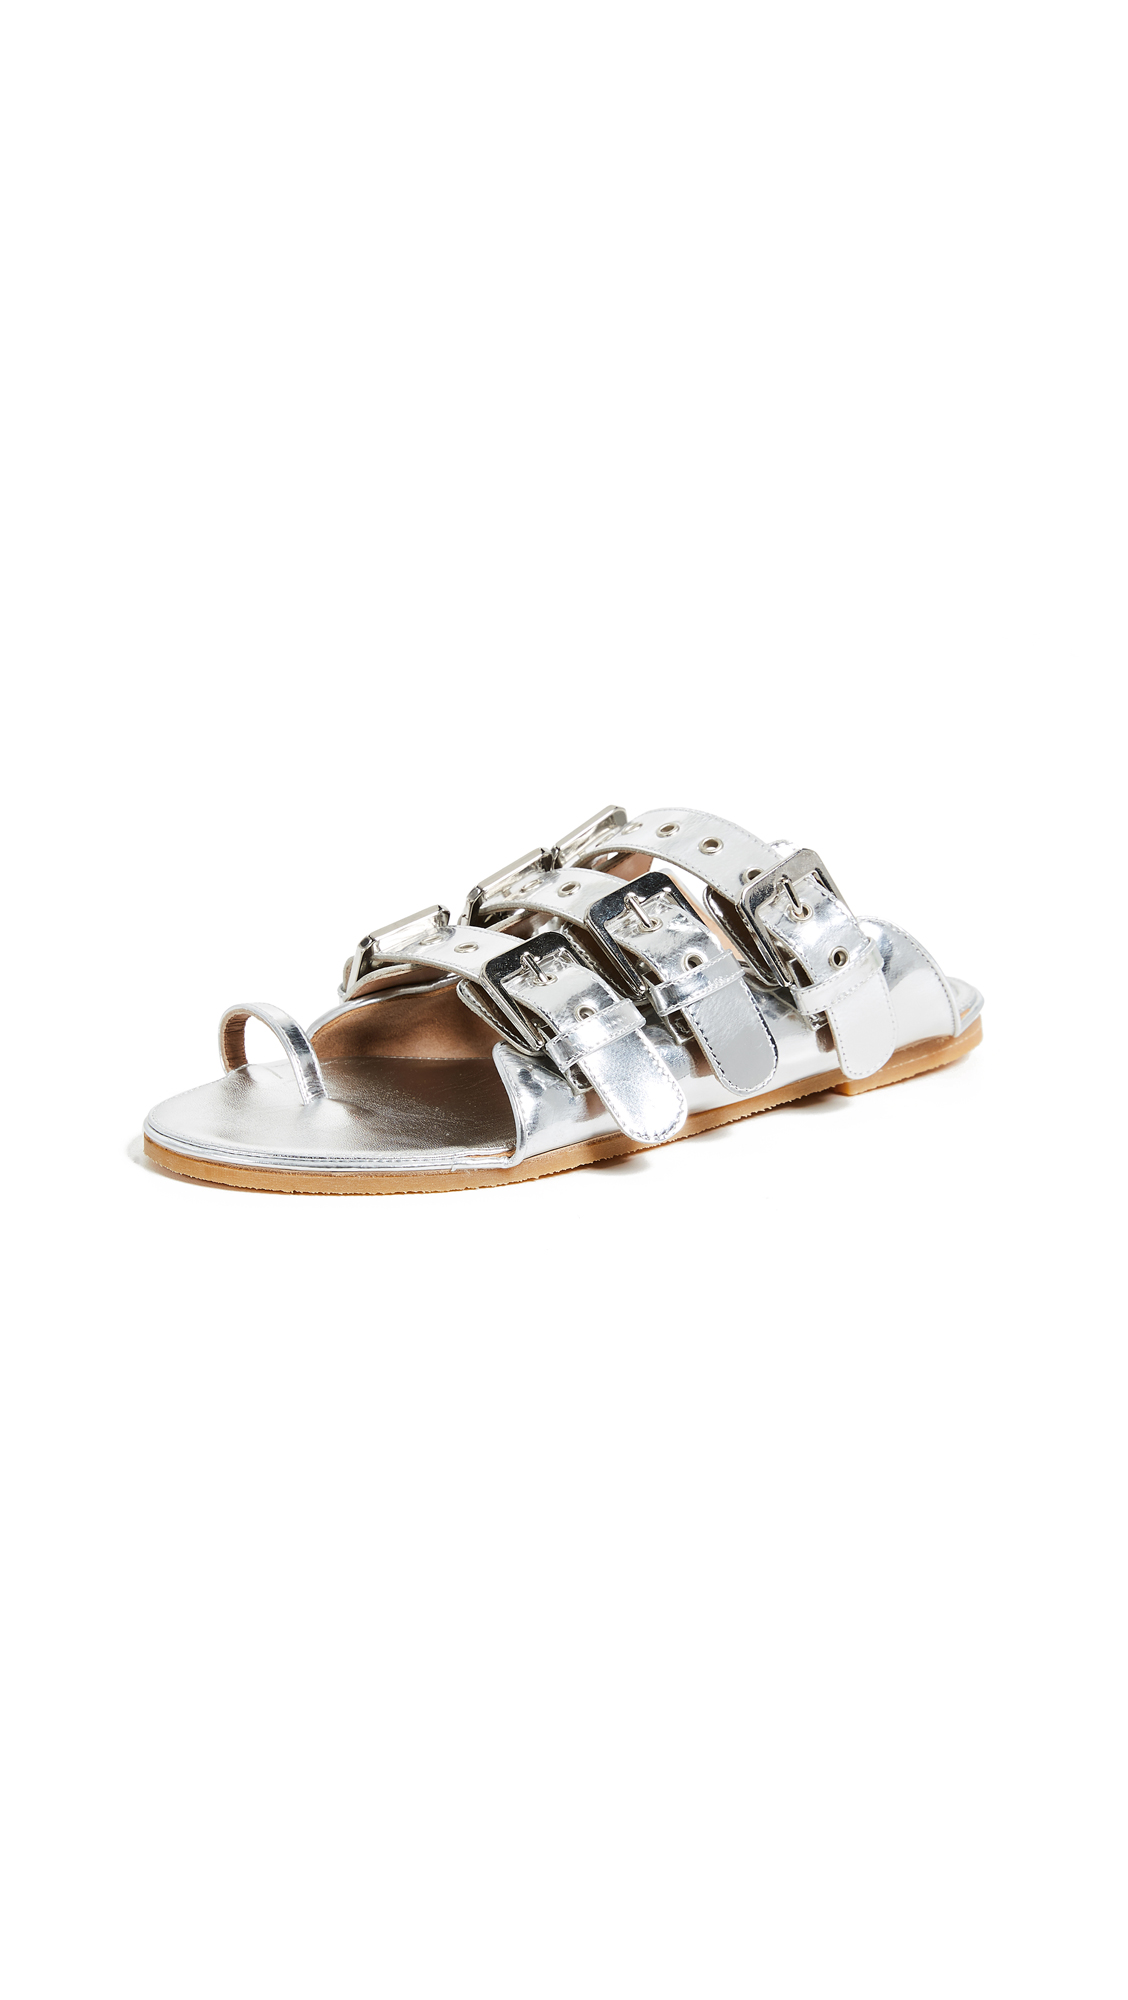 Laurence Dacade Renato Toe Ring Slides - Silver